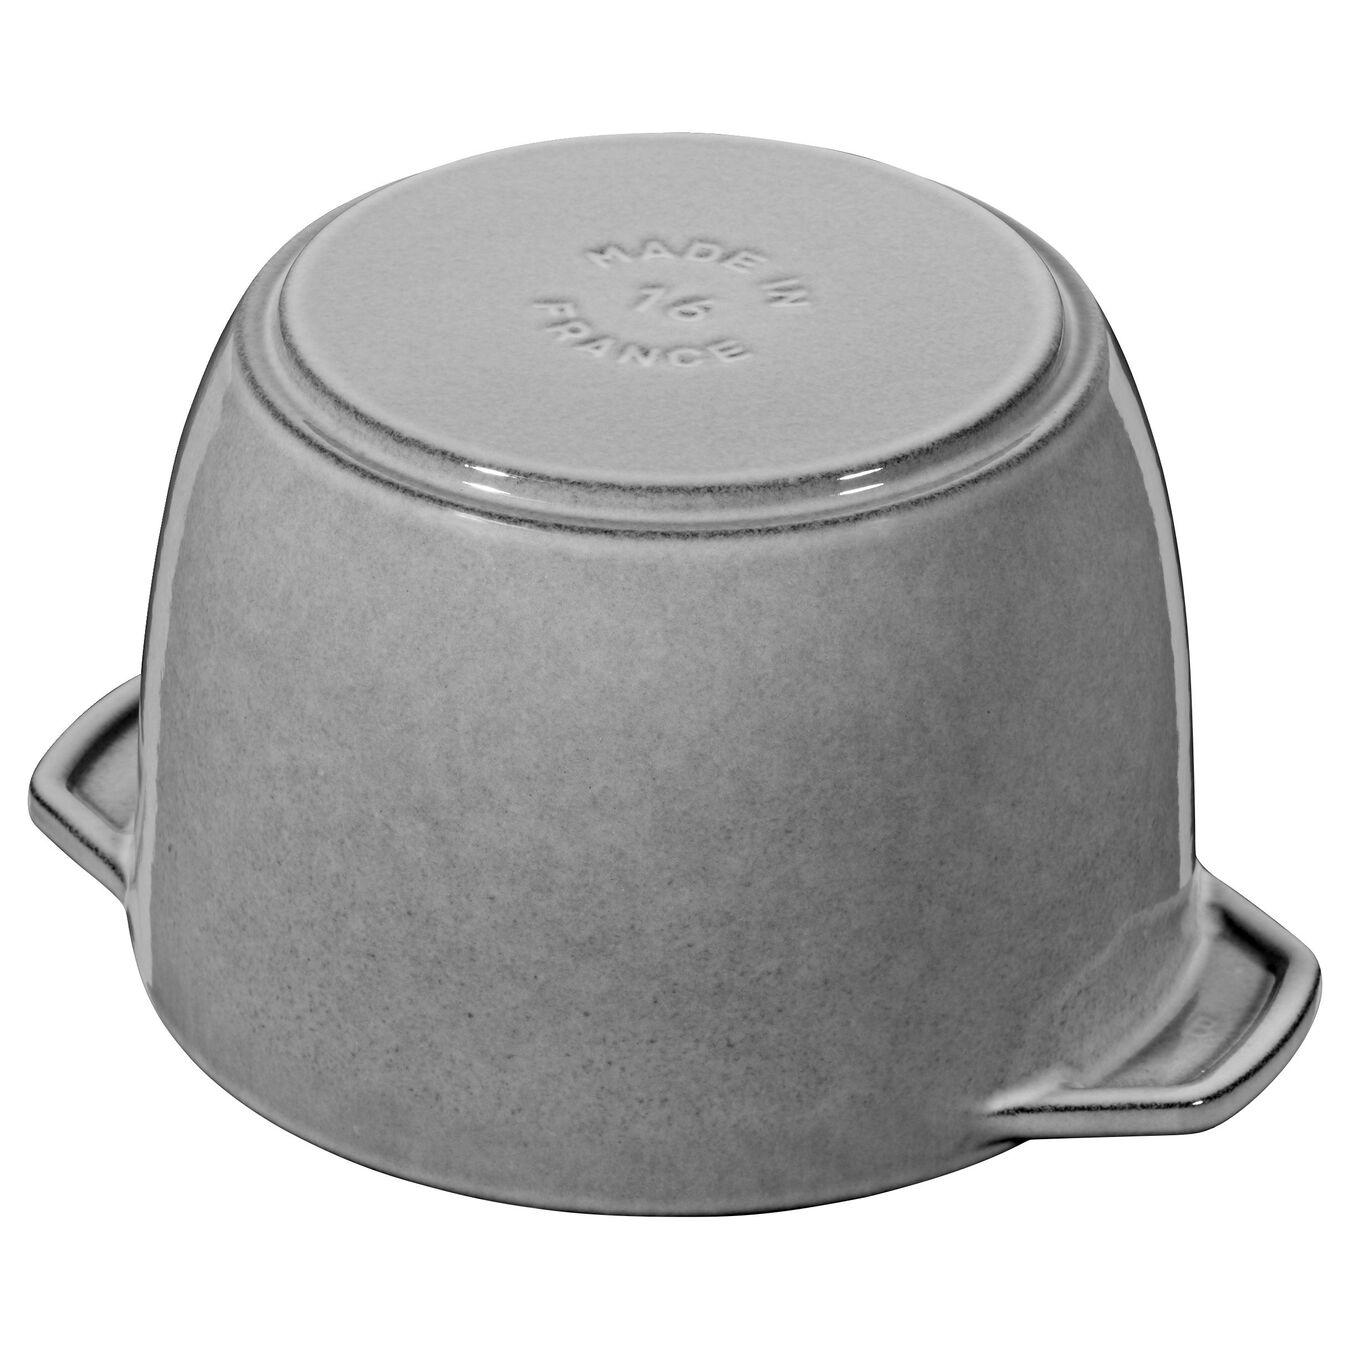 1.5-qt Petite French Oven - Graphite Grey,,large 6